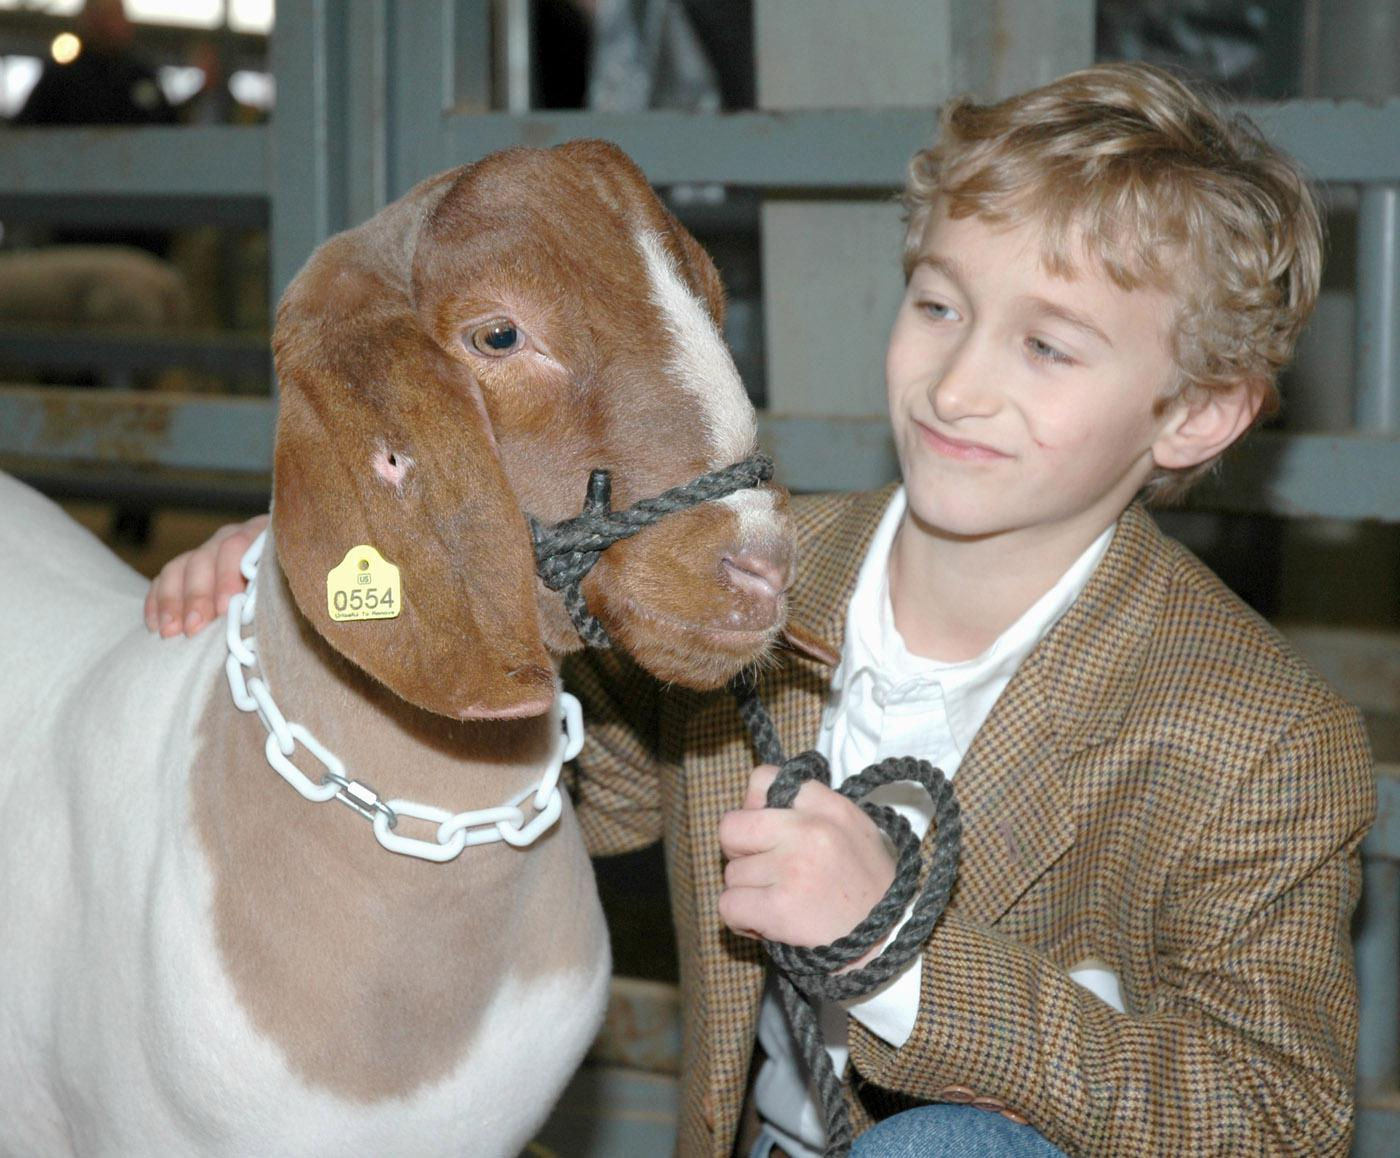 Tate County 4-H member Canan McKellar, age 9, spends a moment with his grand champion goat before entering the arena at the Dixie National Sale of Junior Champions. The goat, which was the champion mediumweight goat, brought a sale record $80 per pound for a total of $7,200.